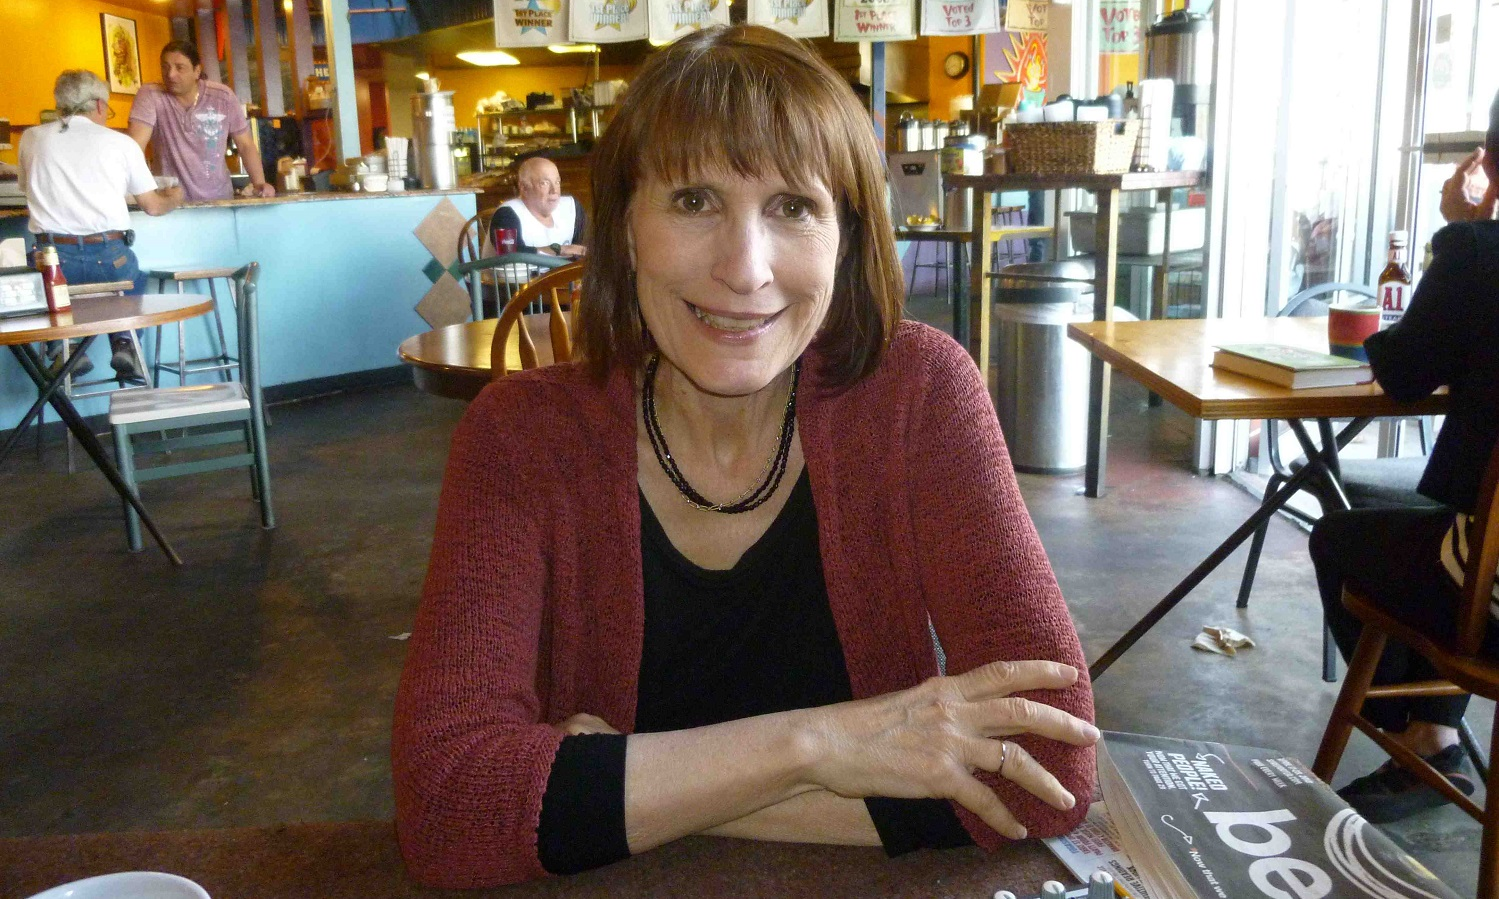 Wenonah Hauter, Executive Director, Food and Water Watch